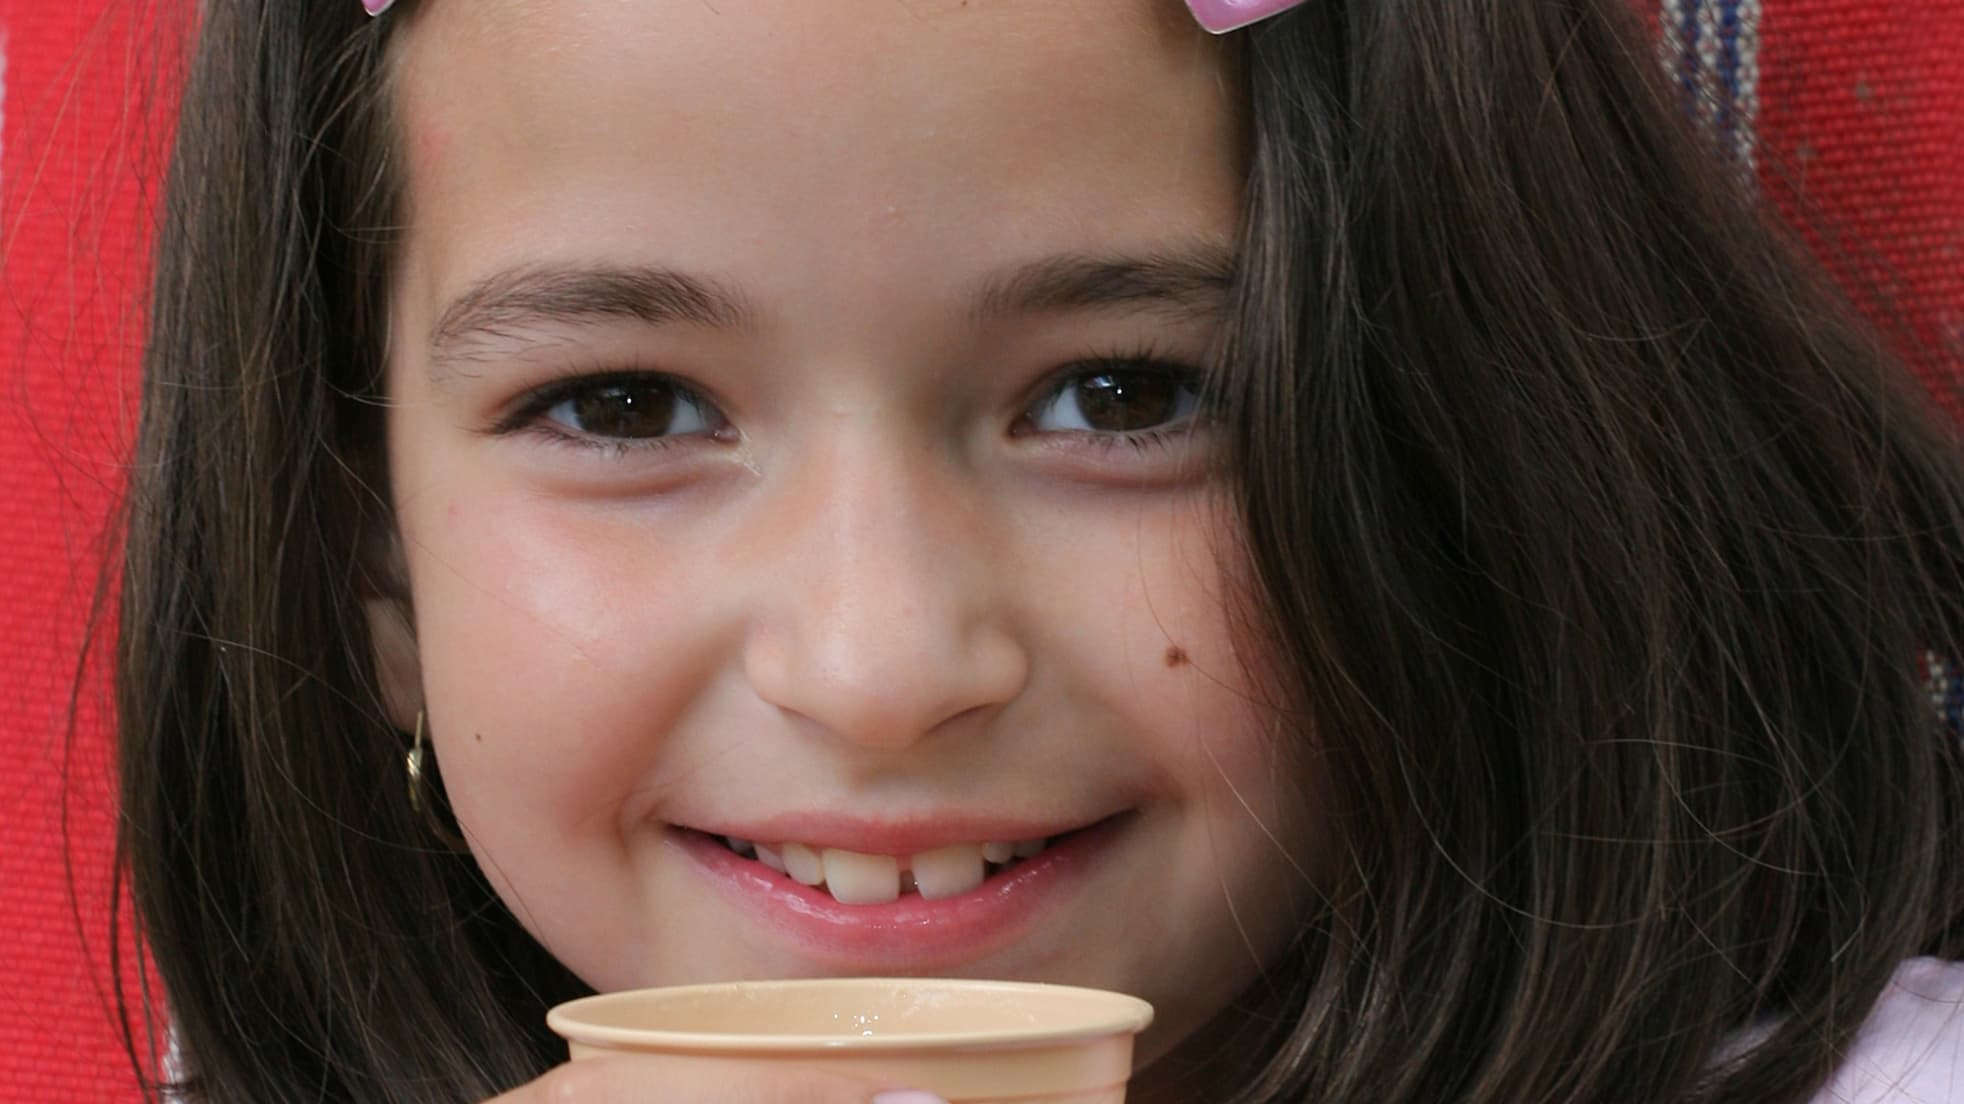 A girl who may have a congenital hand condition holds a cup.